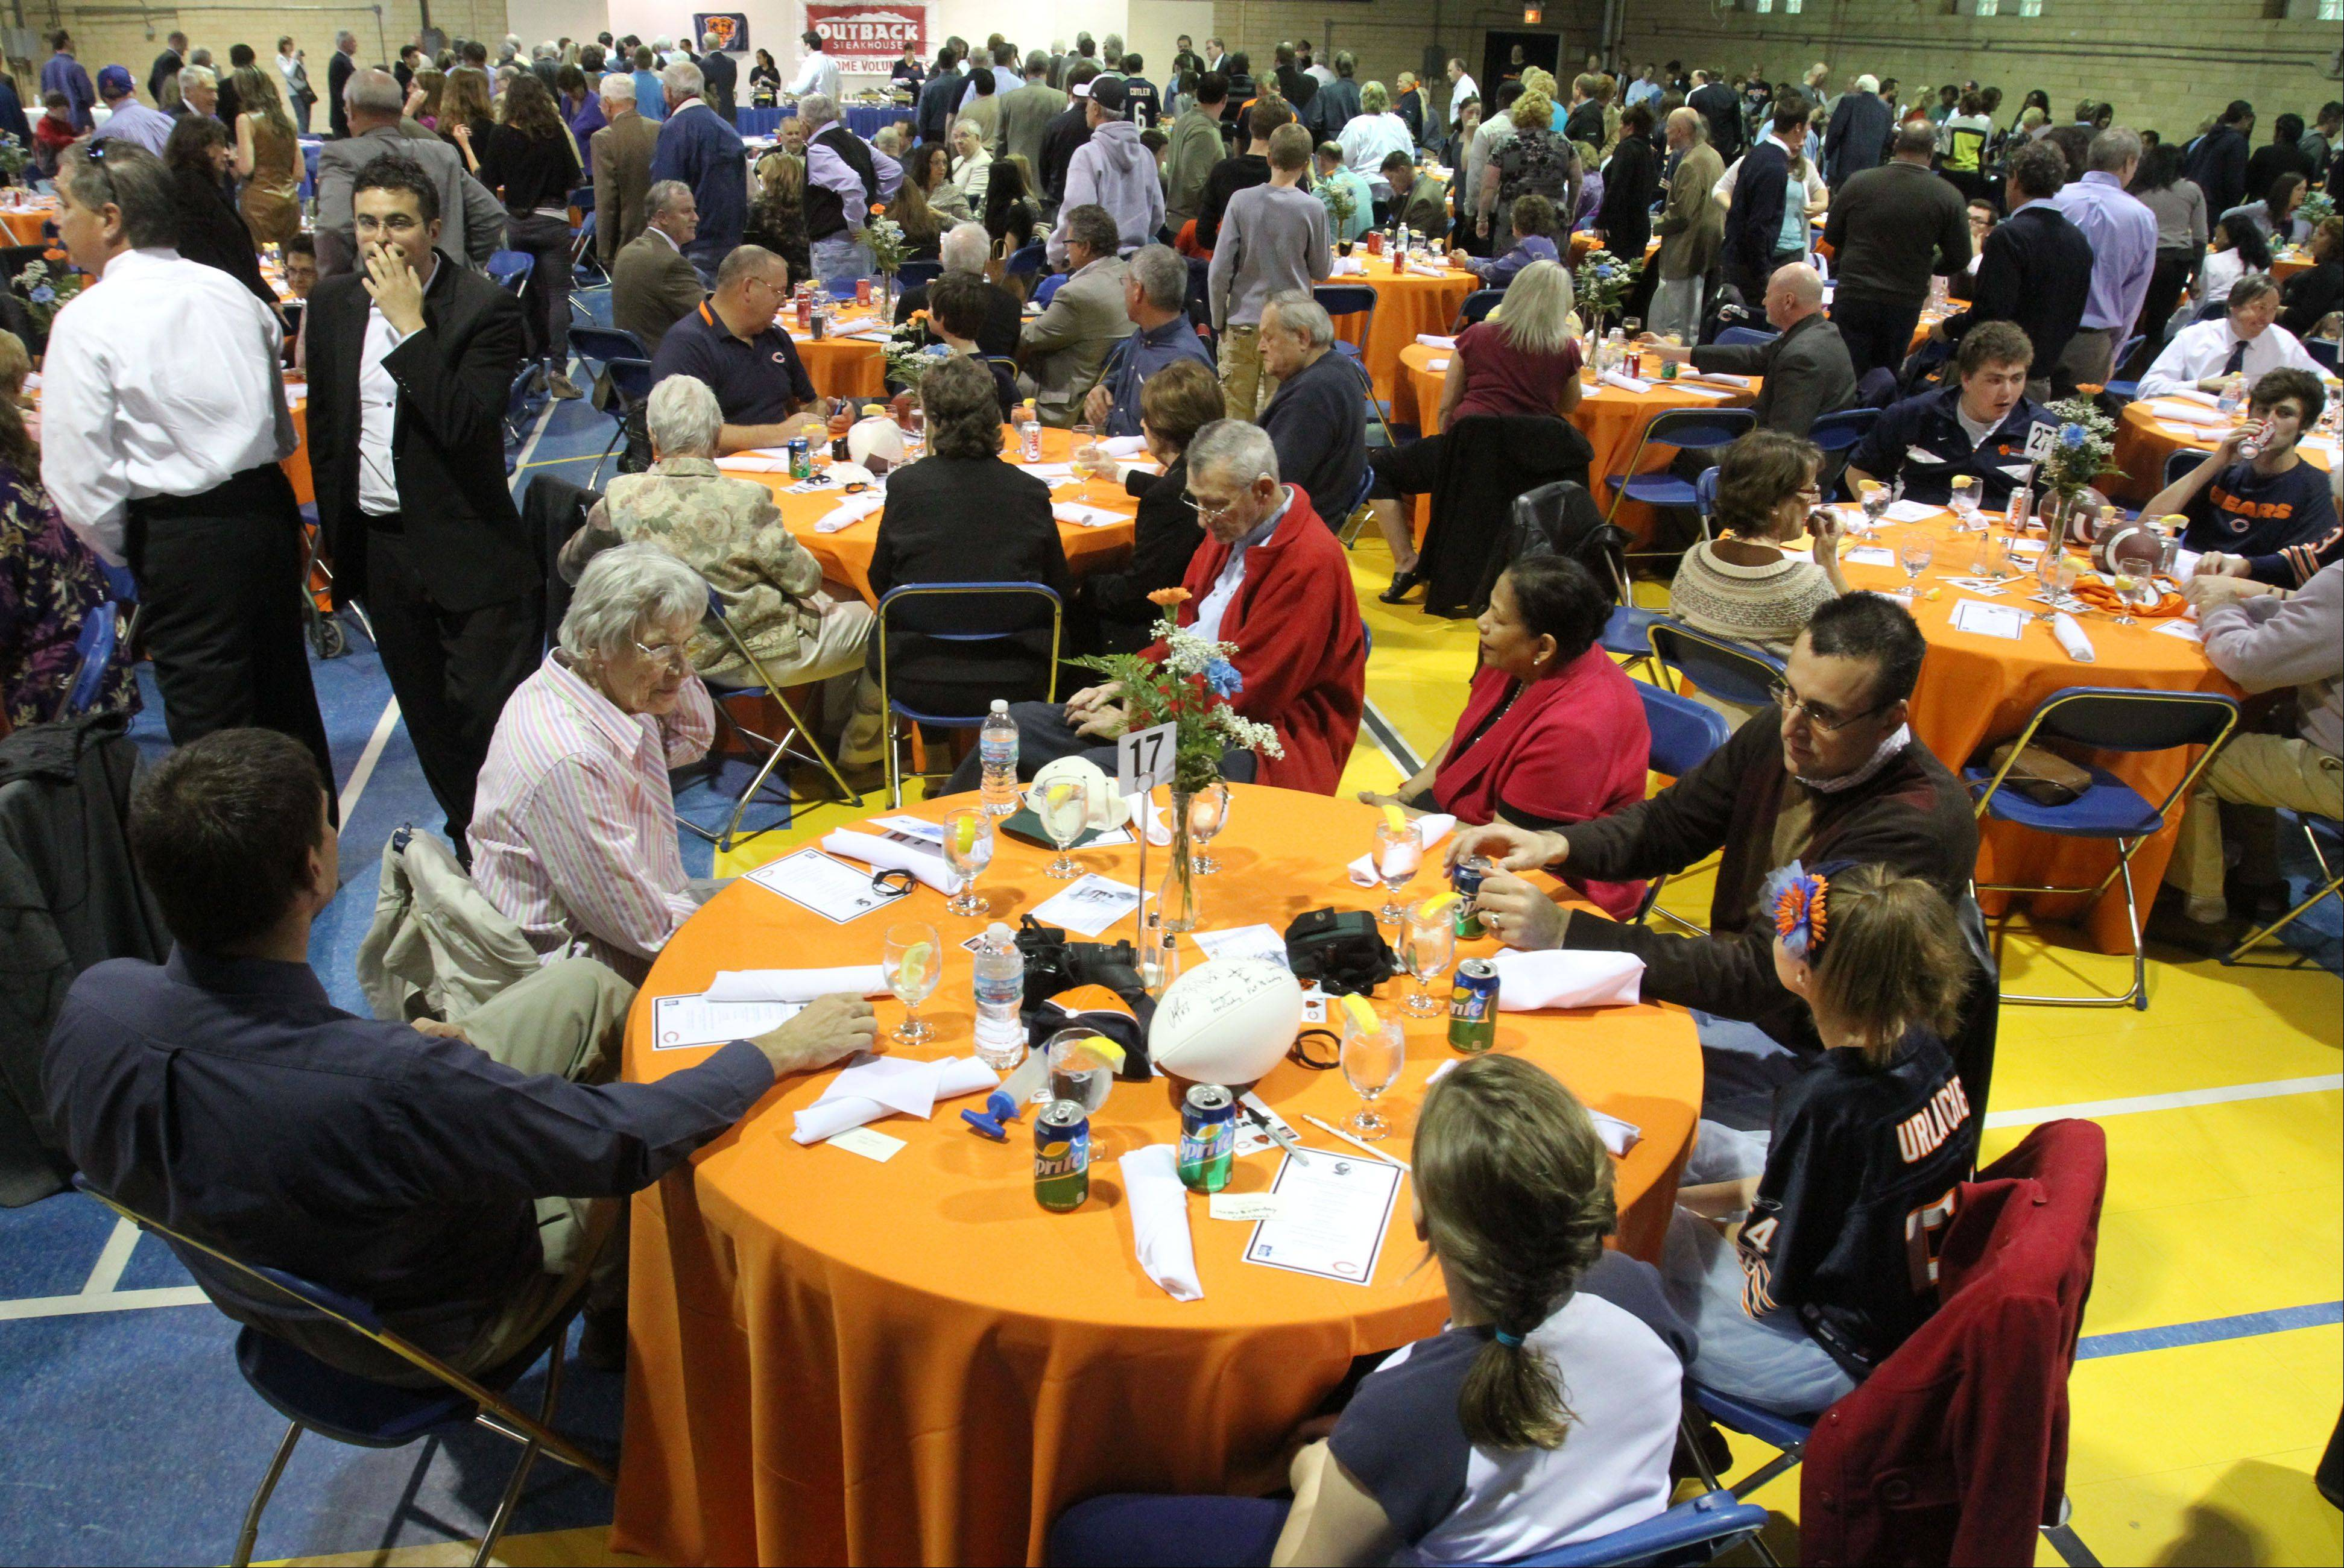 Several hundred attend the Ed McCaskey Scholarship luncheon at Maryville Academy in Des Plaines.